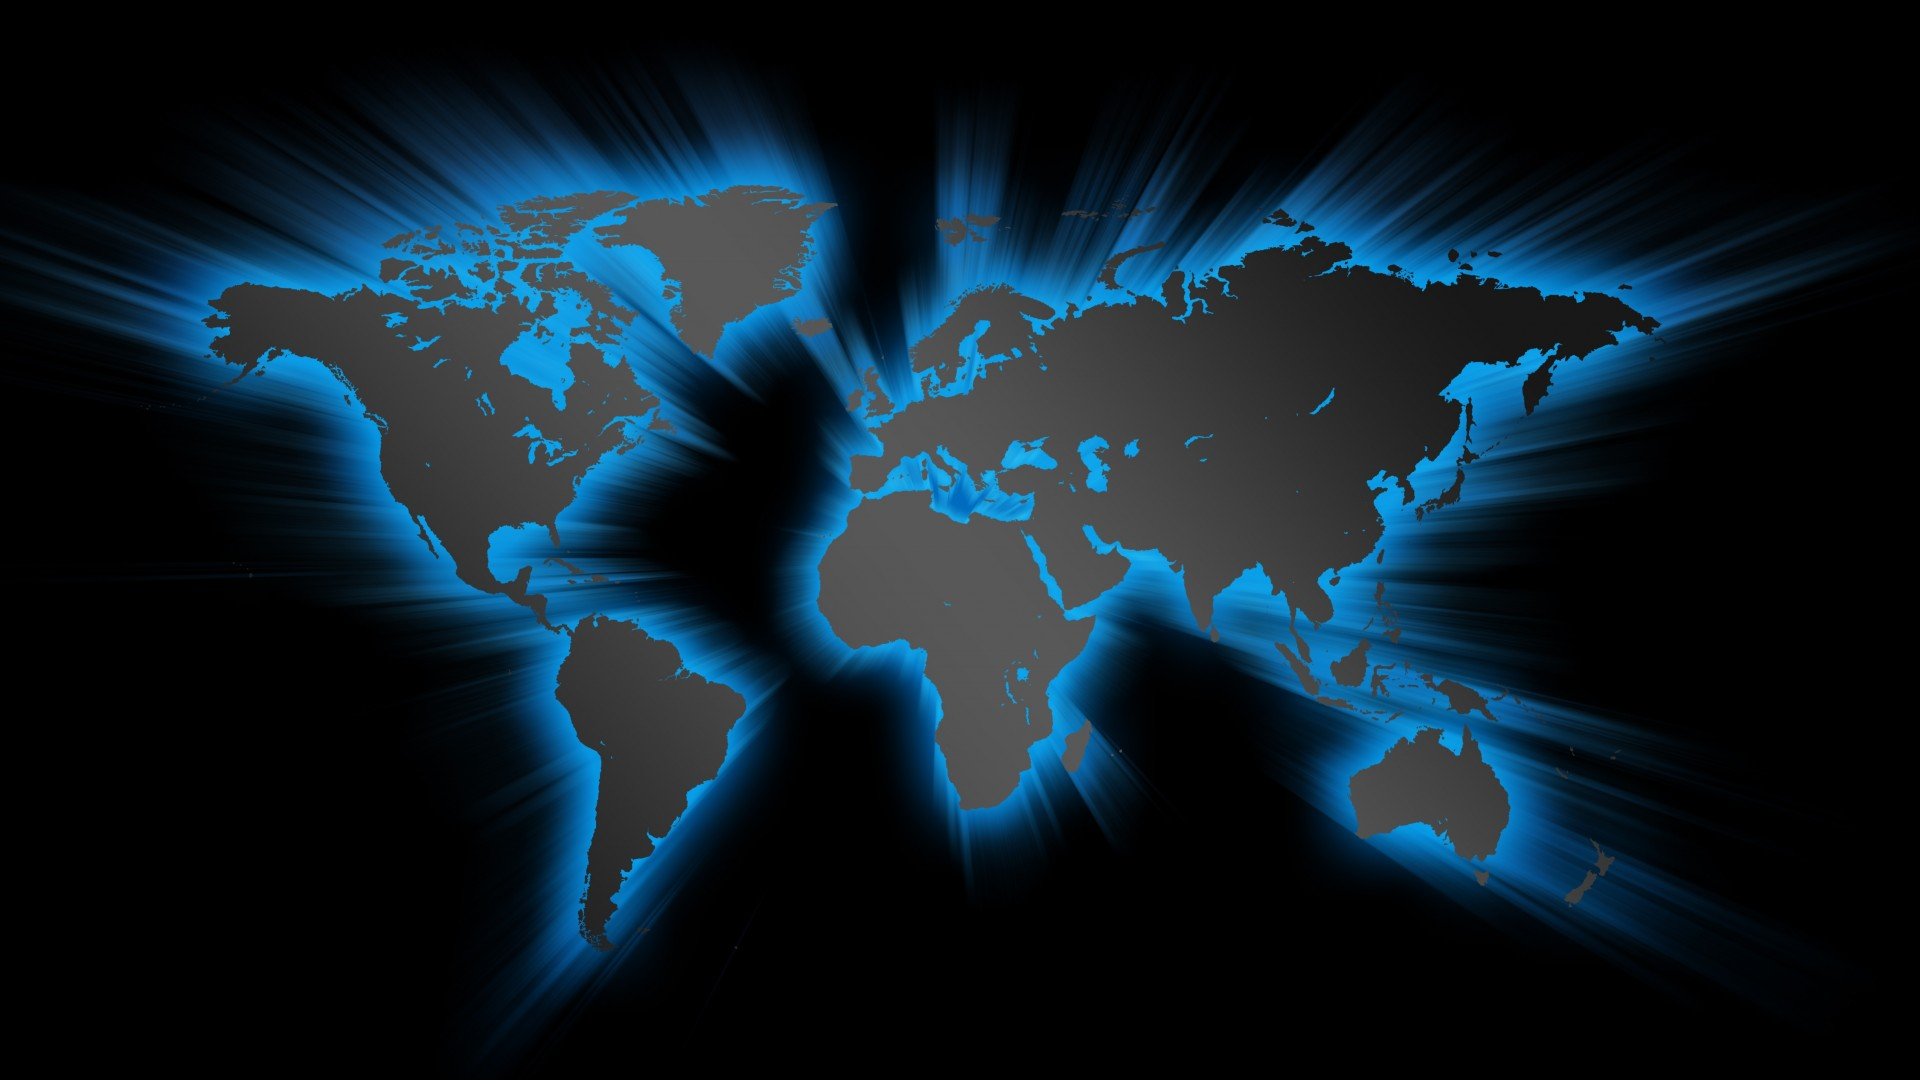 Blue Effect World Map - HD Wallpapers